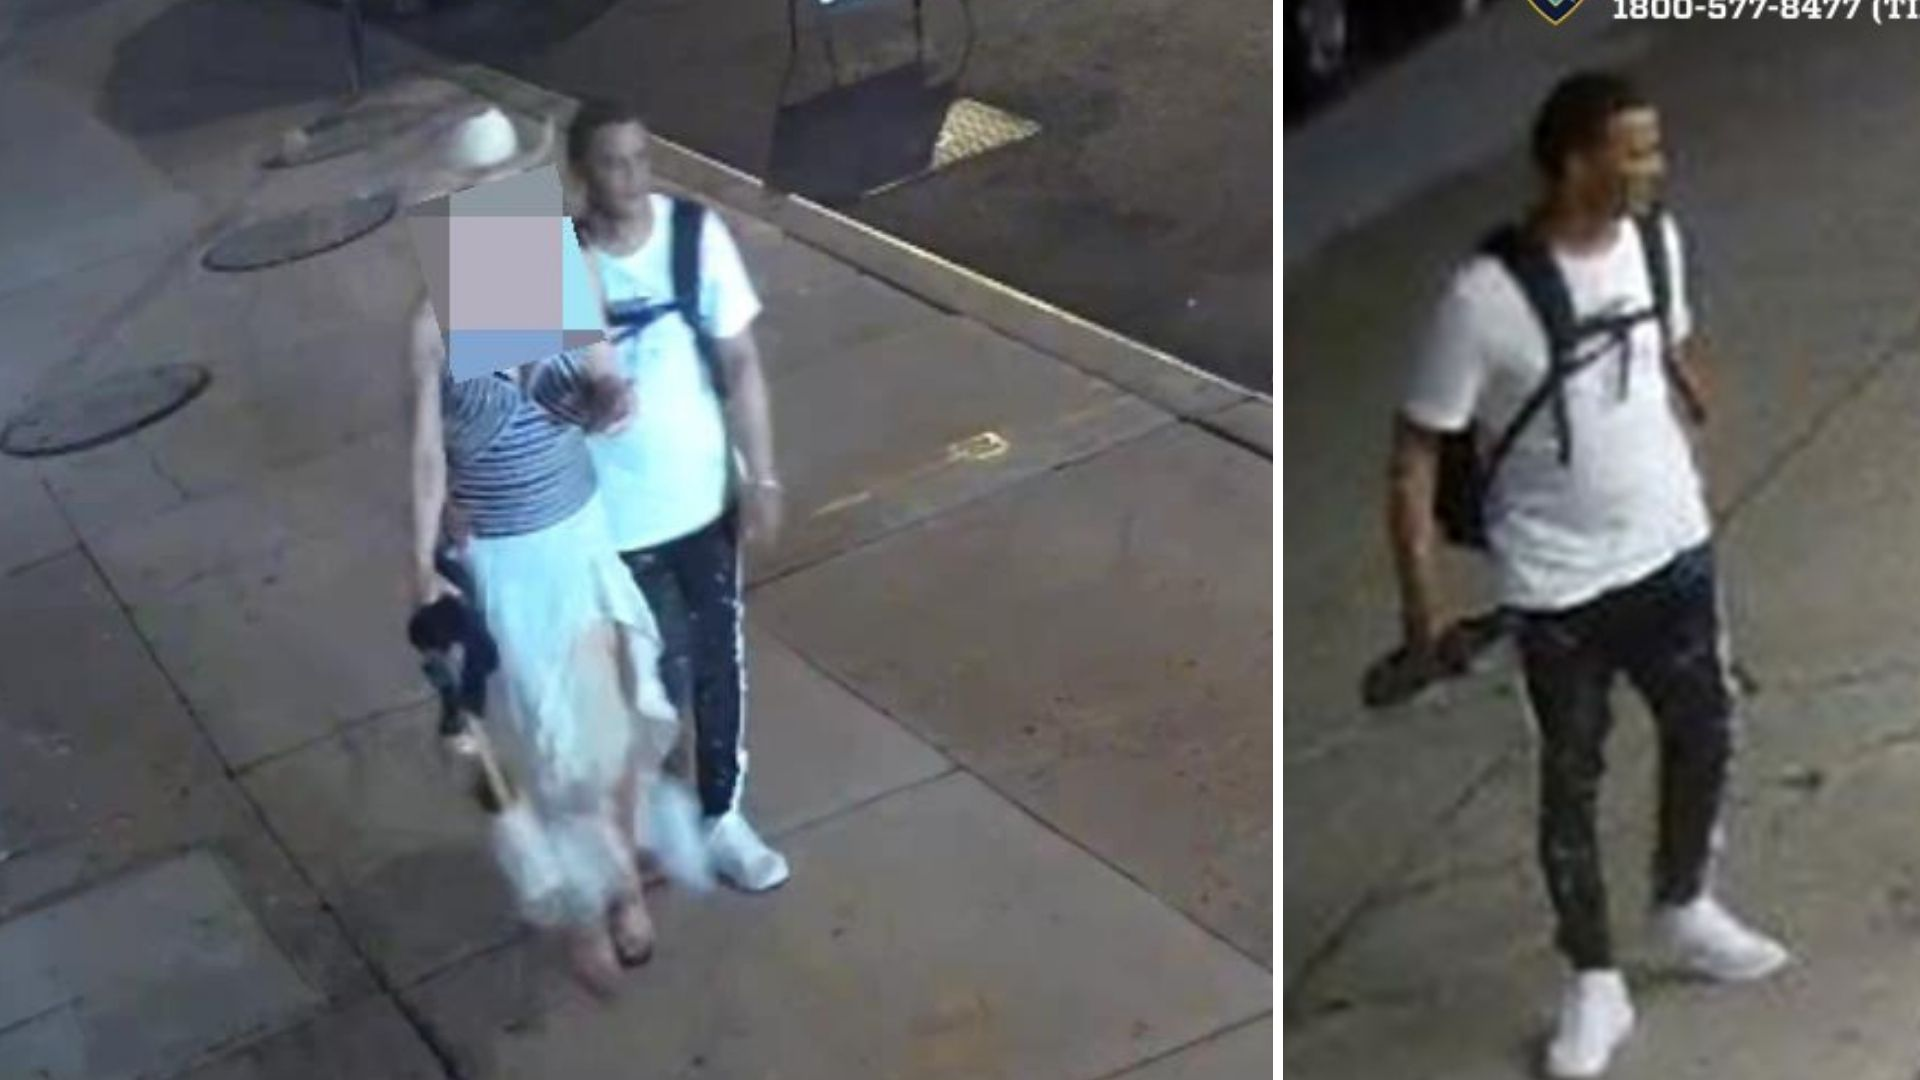 Tourist forcibly touched, robbed in Manhattan